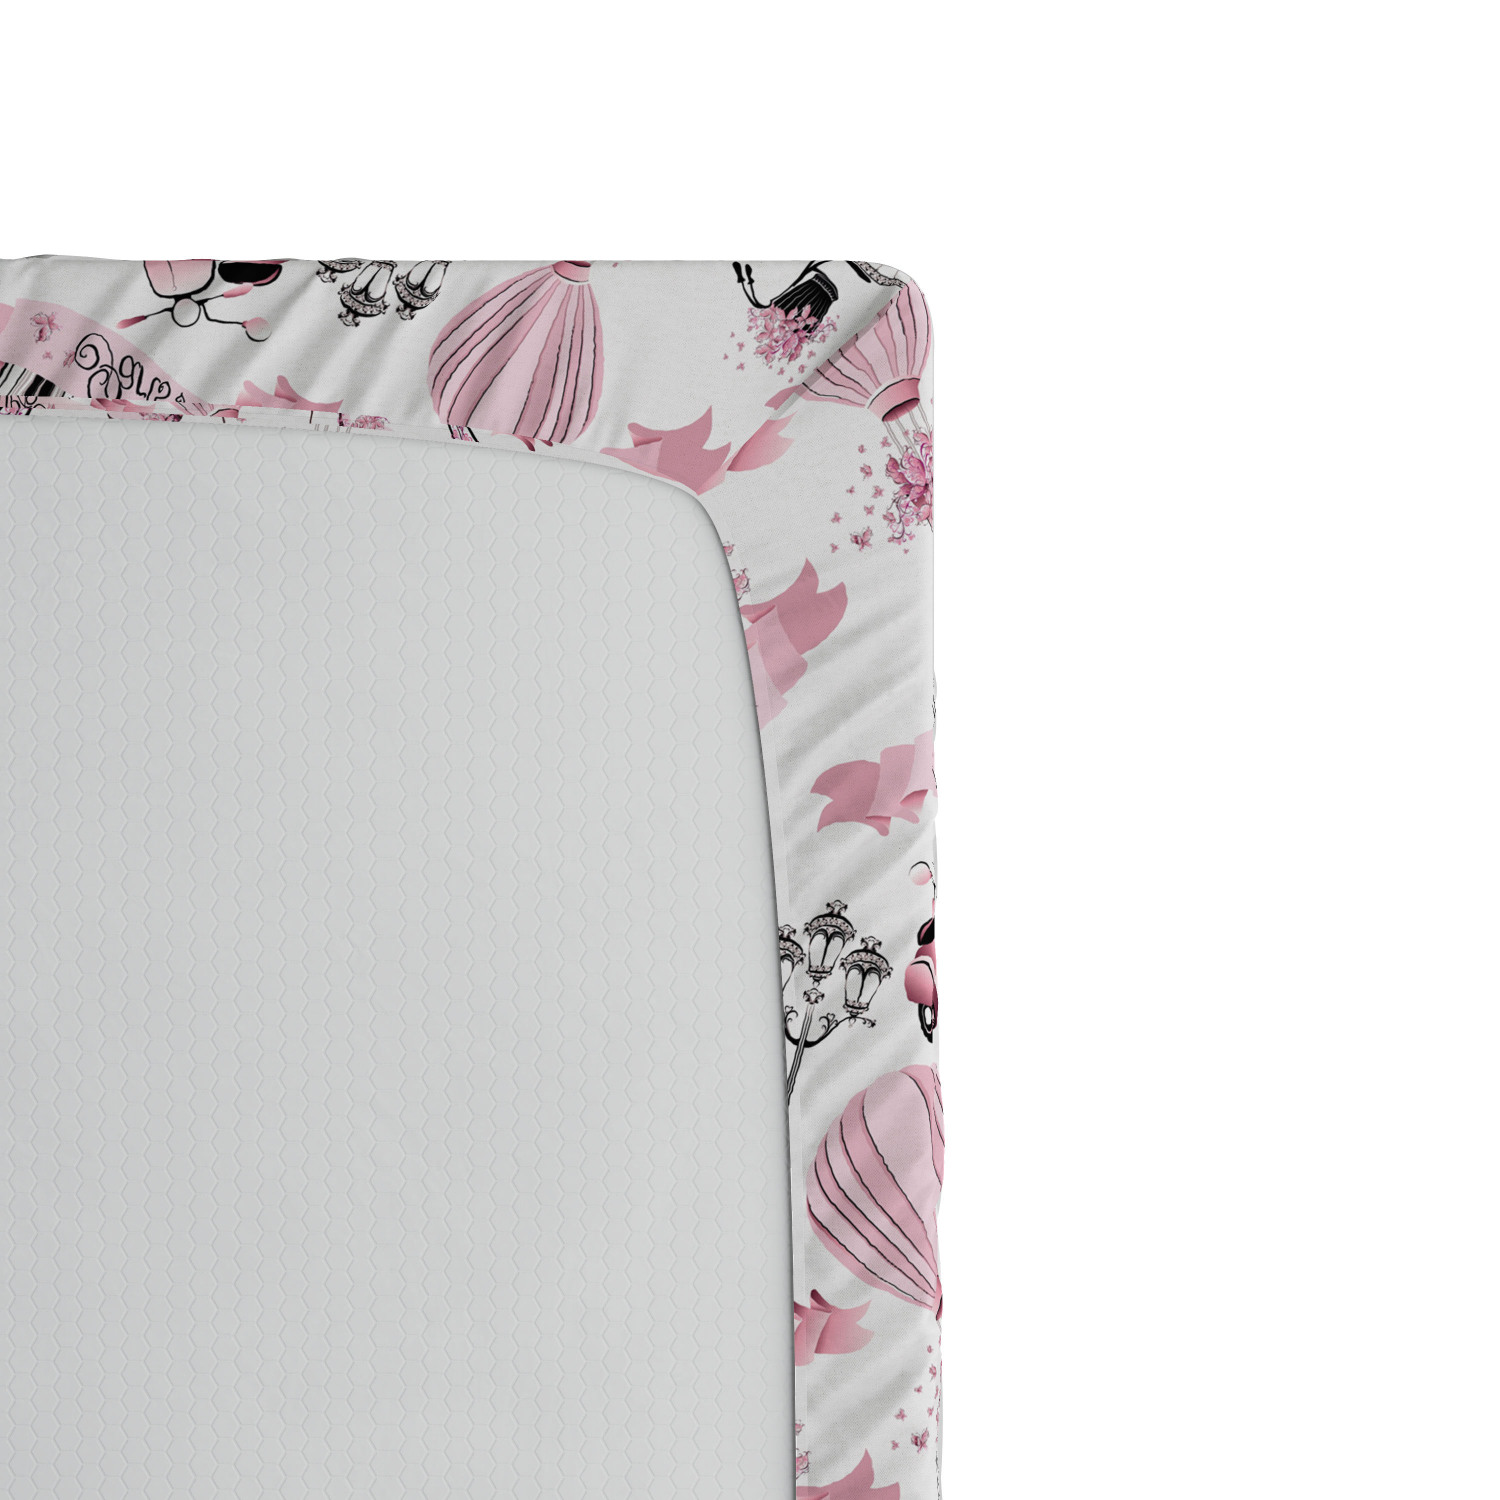 Eiffel Fitted Sheet Cover with All-Round Elastic Pocket in 4 Sizes